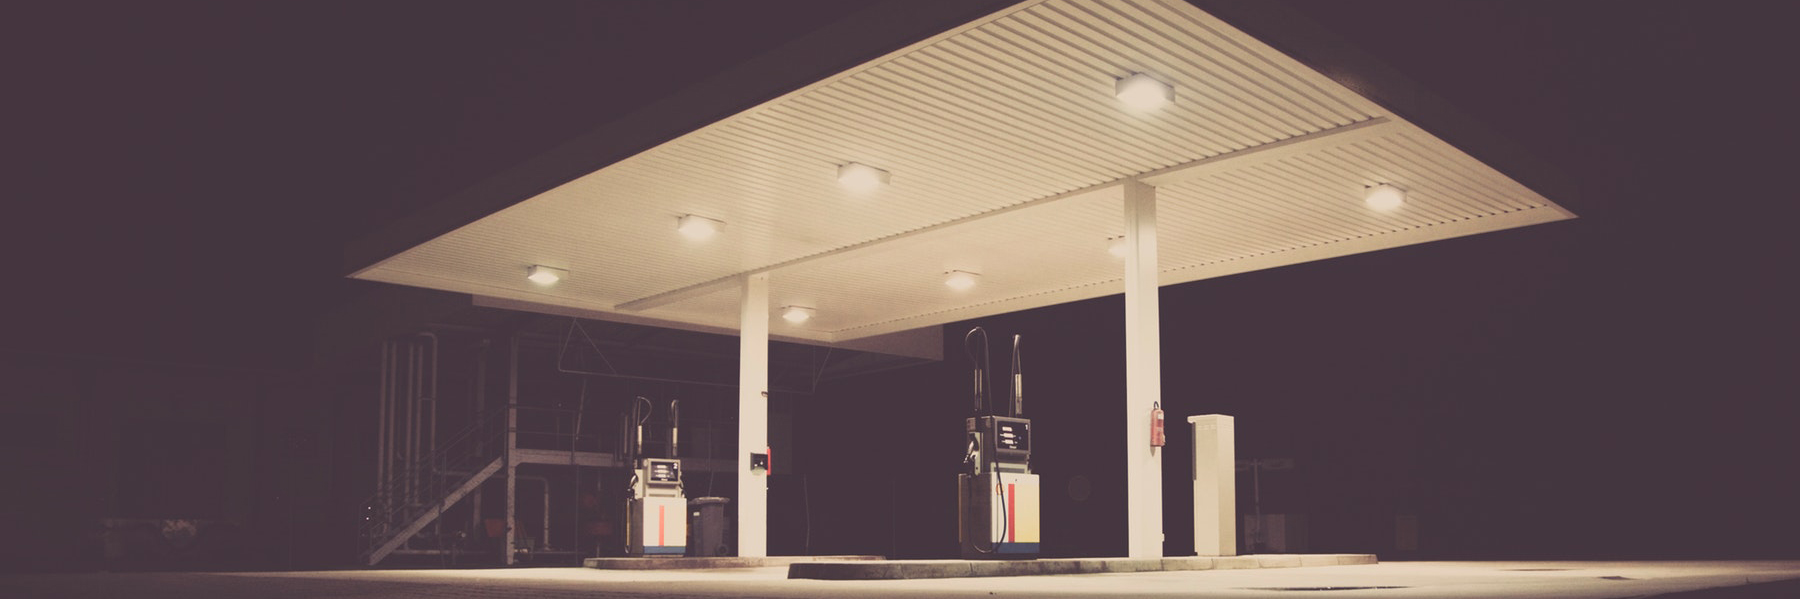 amazon gas station coming soon